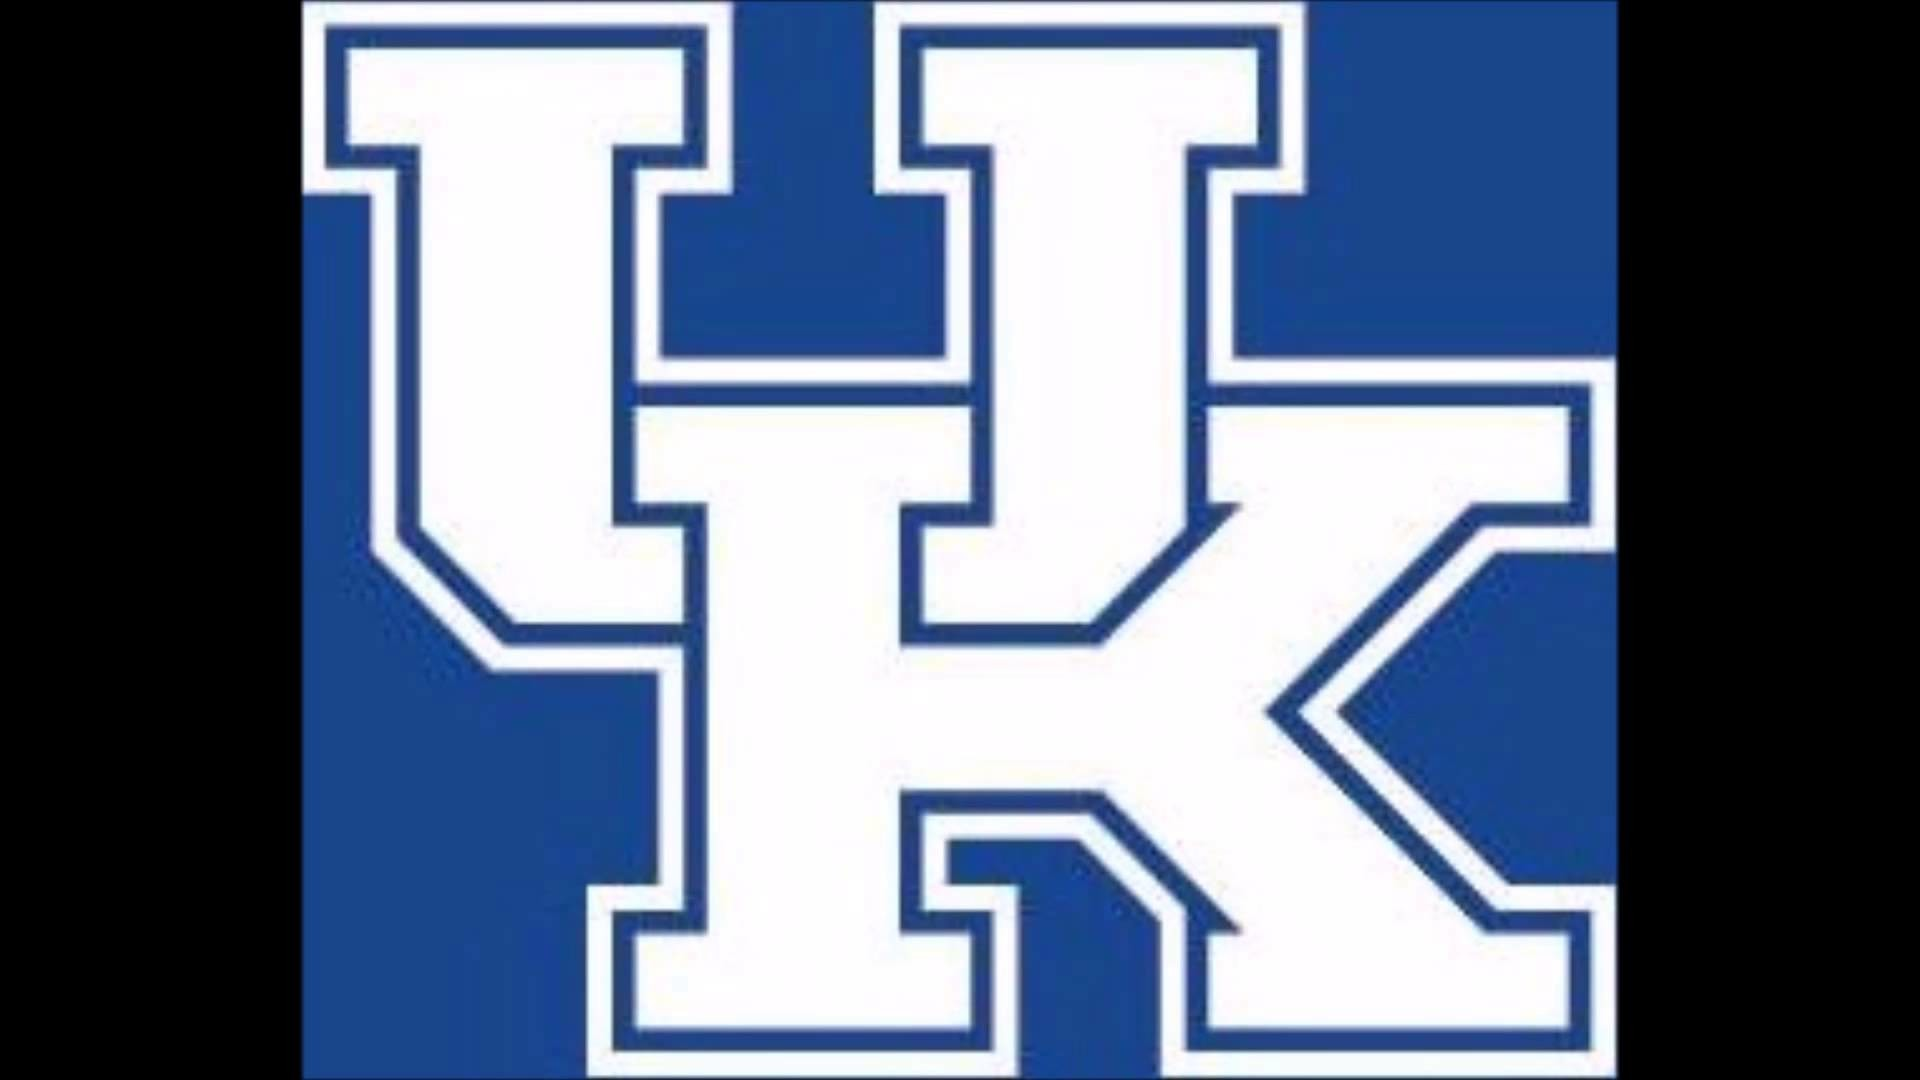 University Of Kentucky Chrome Themes Ios Wallpapers: Kentucky Wildcats Wallpapers (61+ Pictures